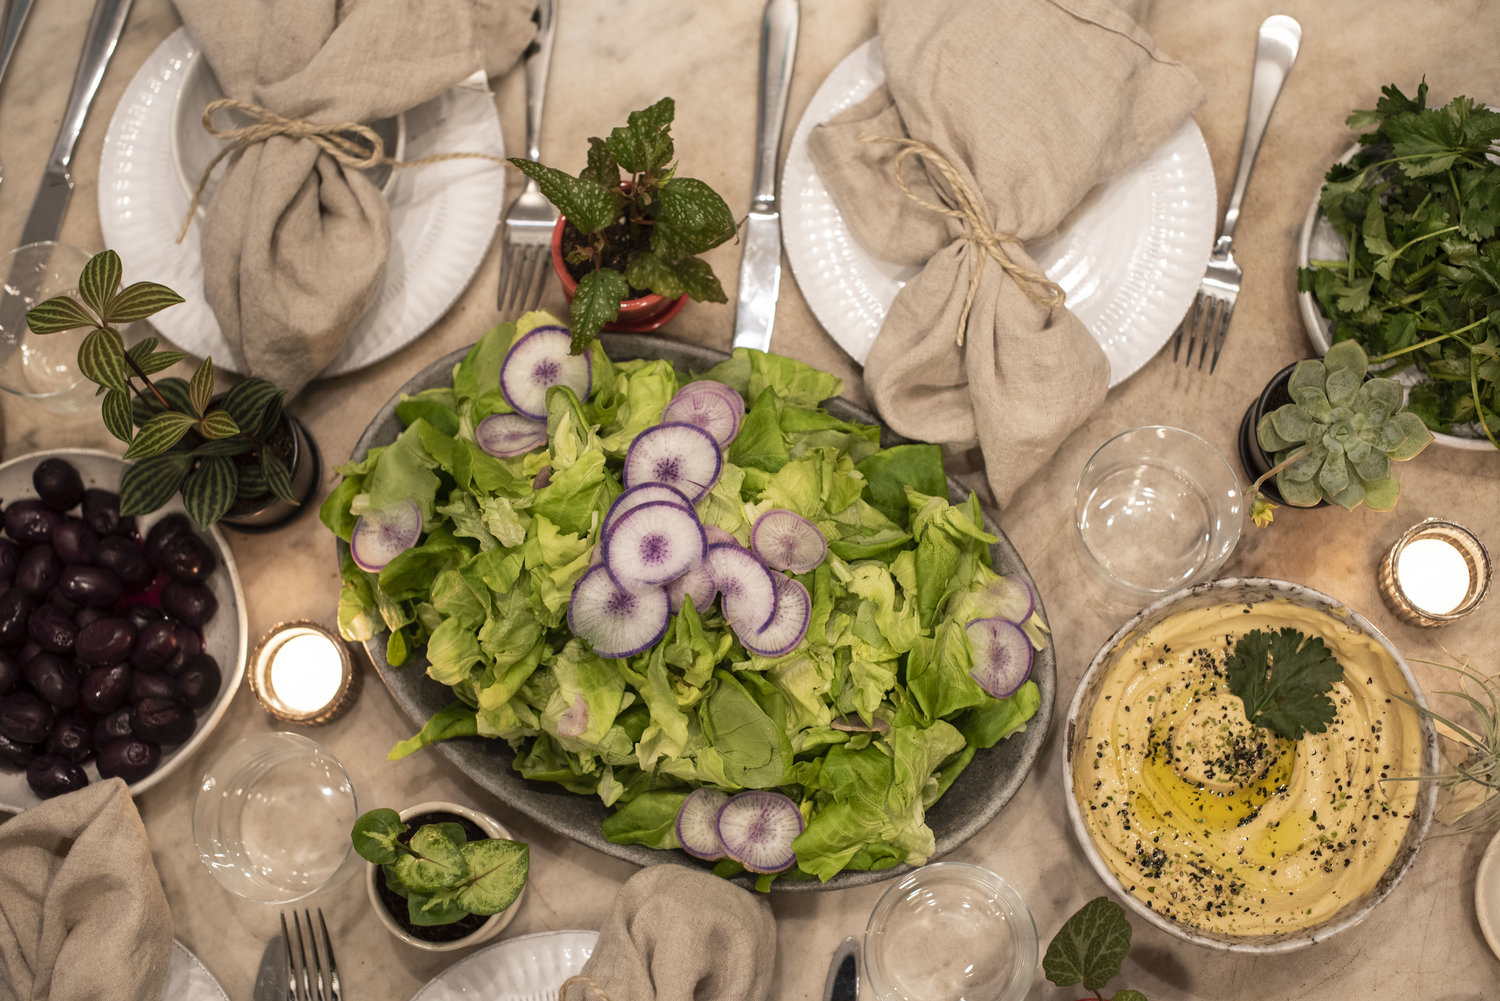 What We Learned at our Food Tabletop & Plant Styling Workshop2